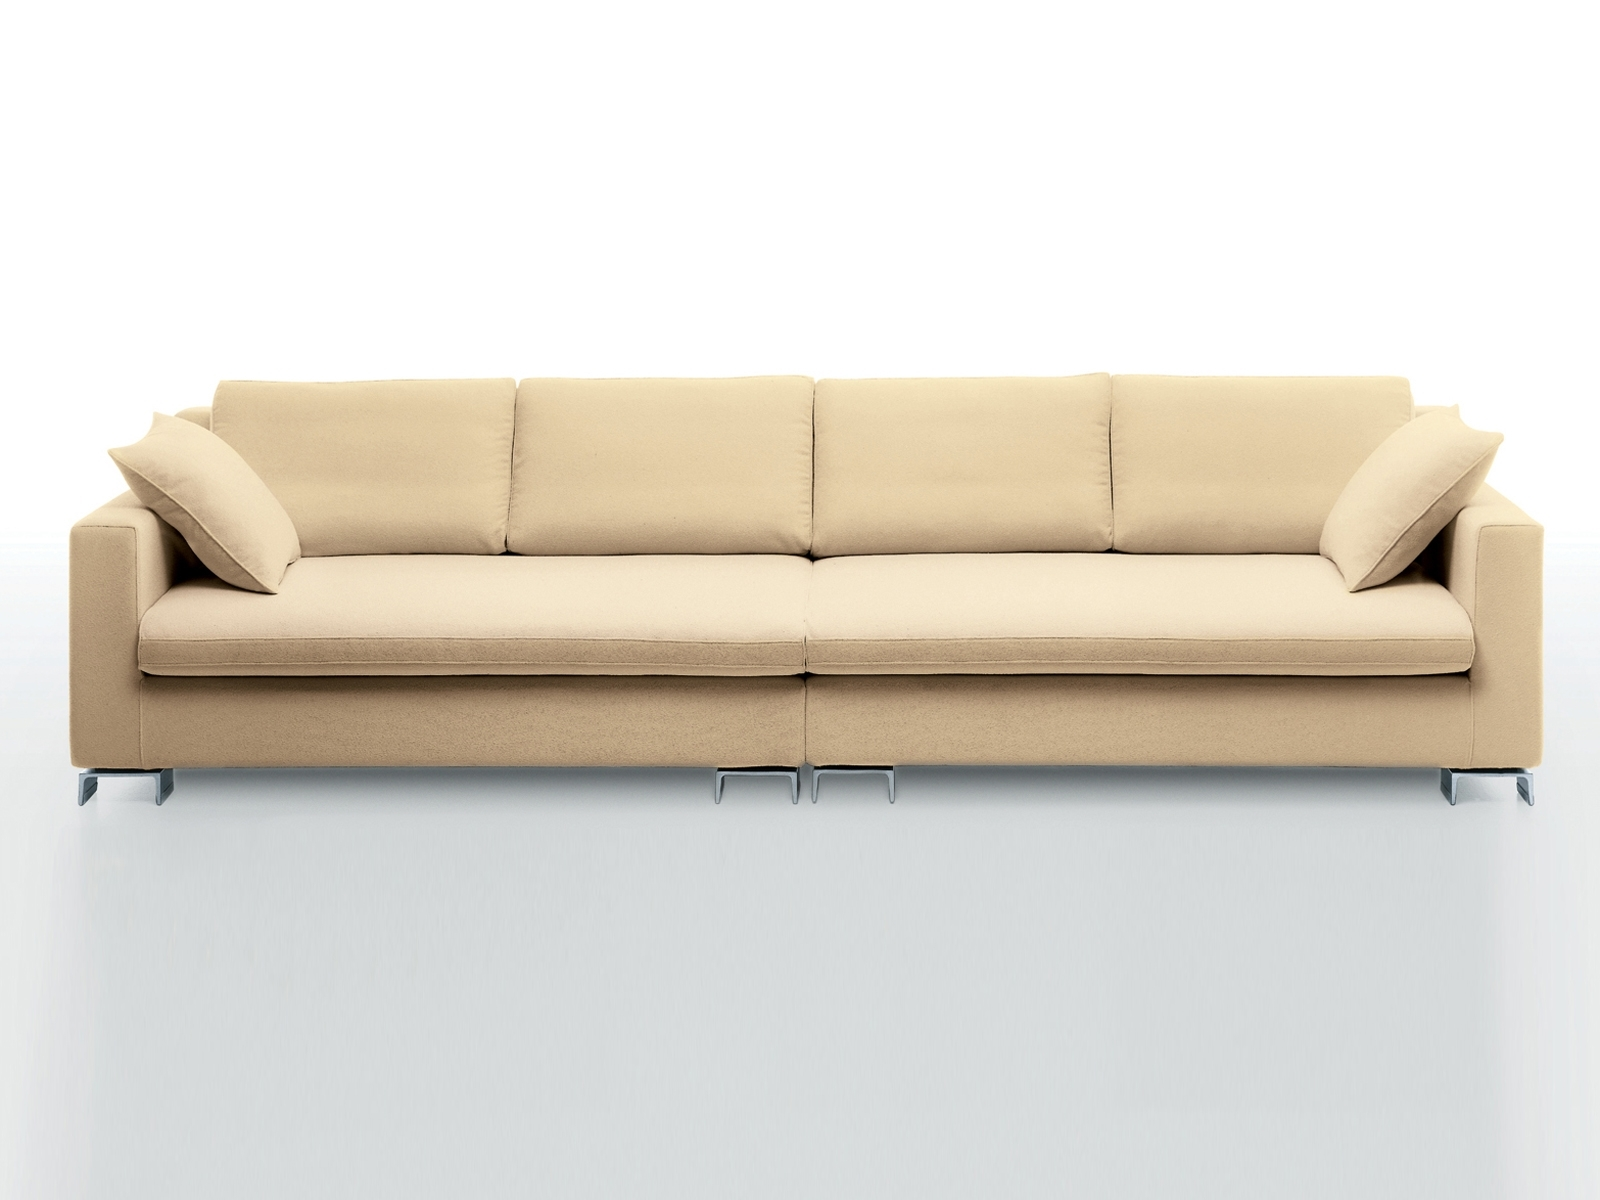 Most Recent 4 Seater Sofa For Large And Trendy Living Room For Large 4 Seater Sofas (View 11 of 20)